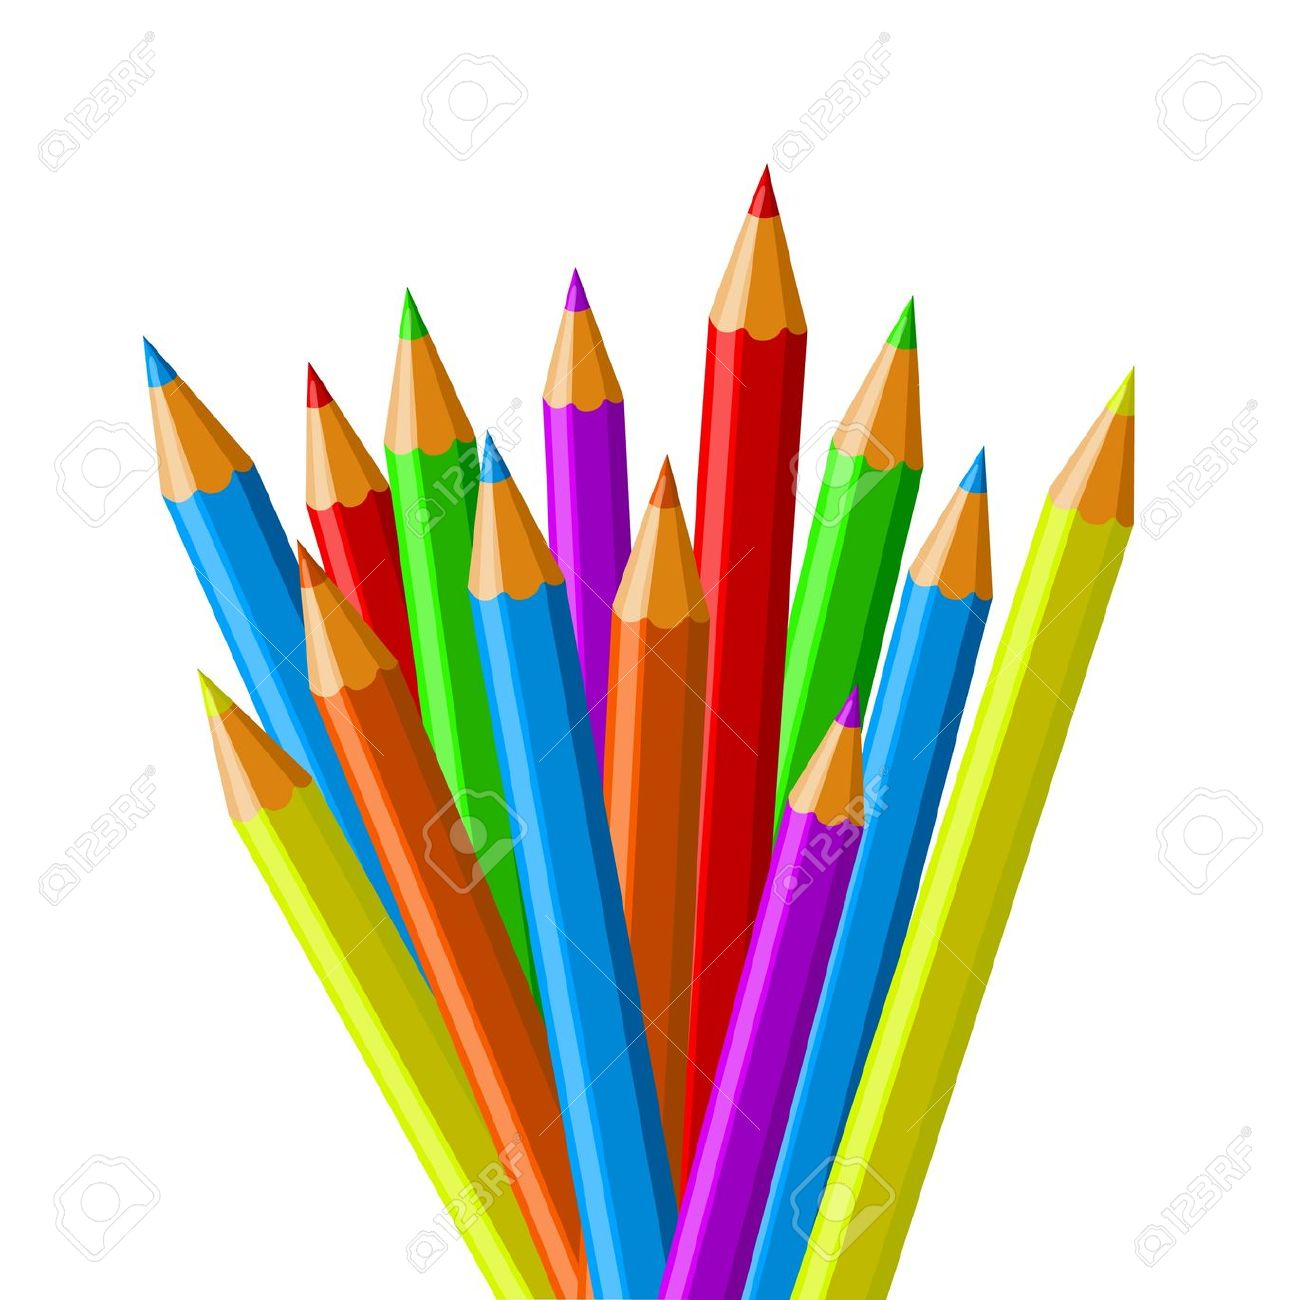 Colres clipart - ClipgroundCrayon Markers Clipart